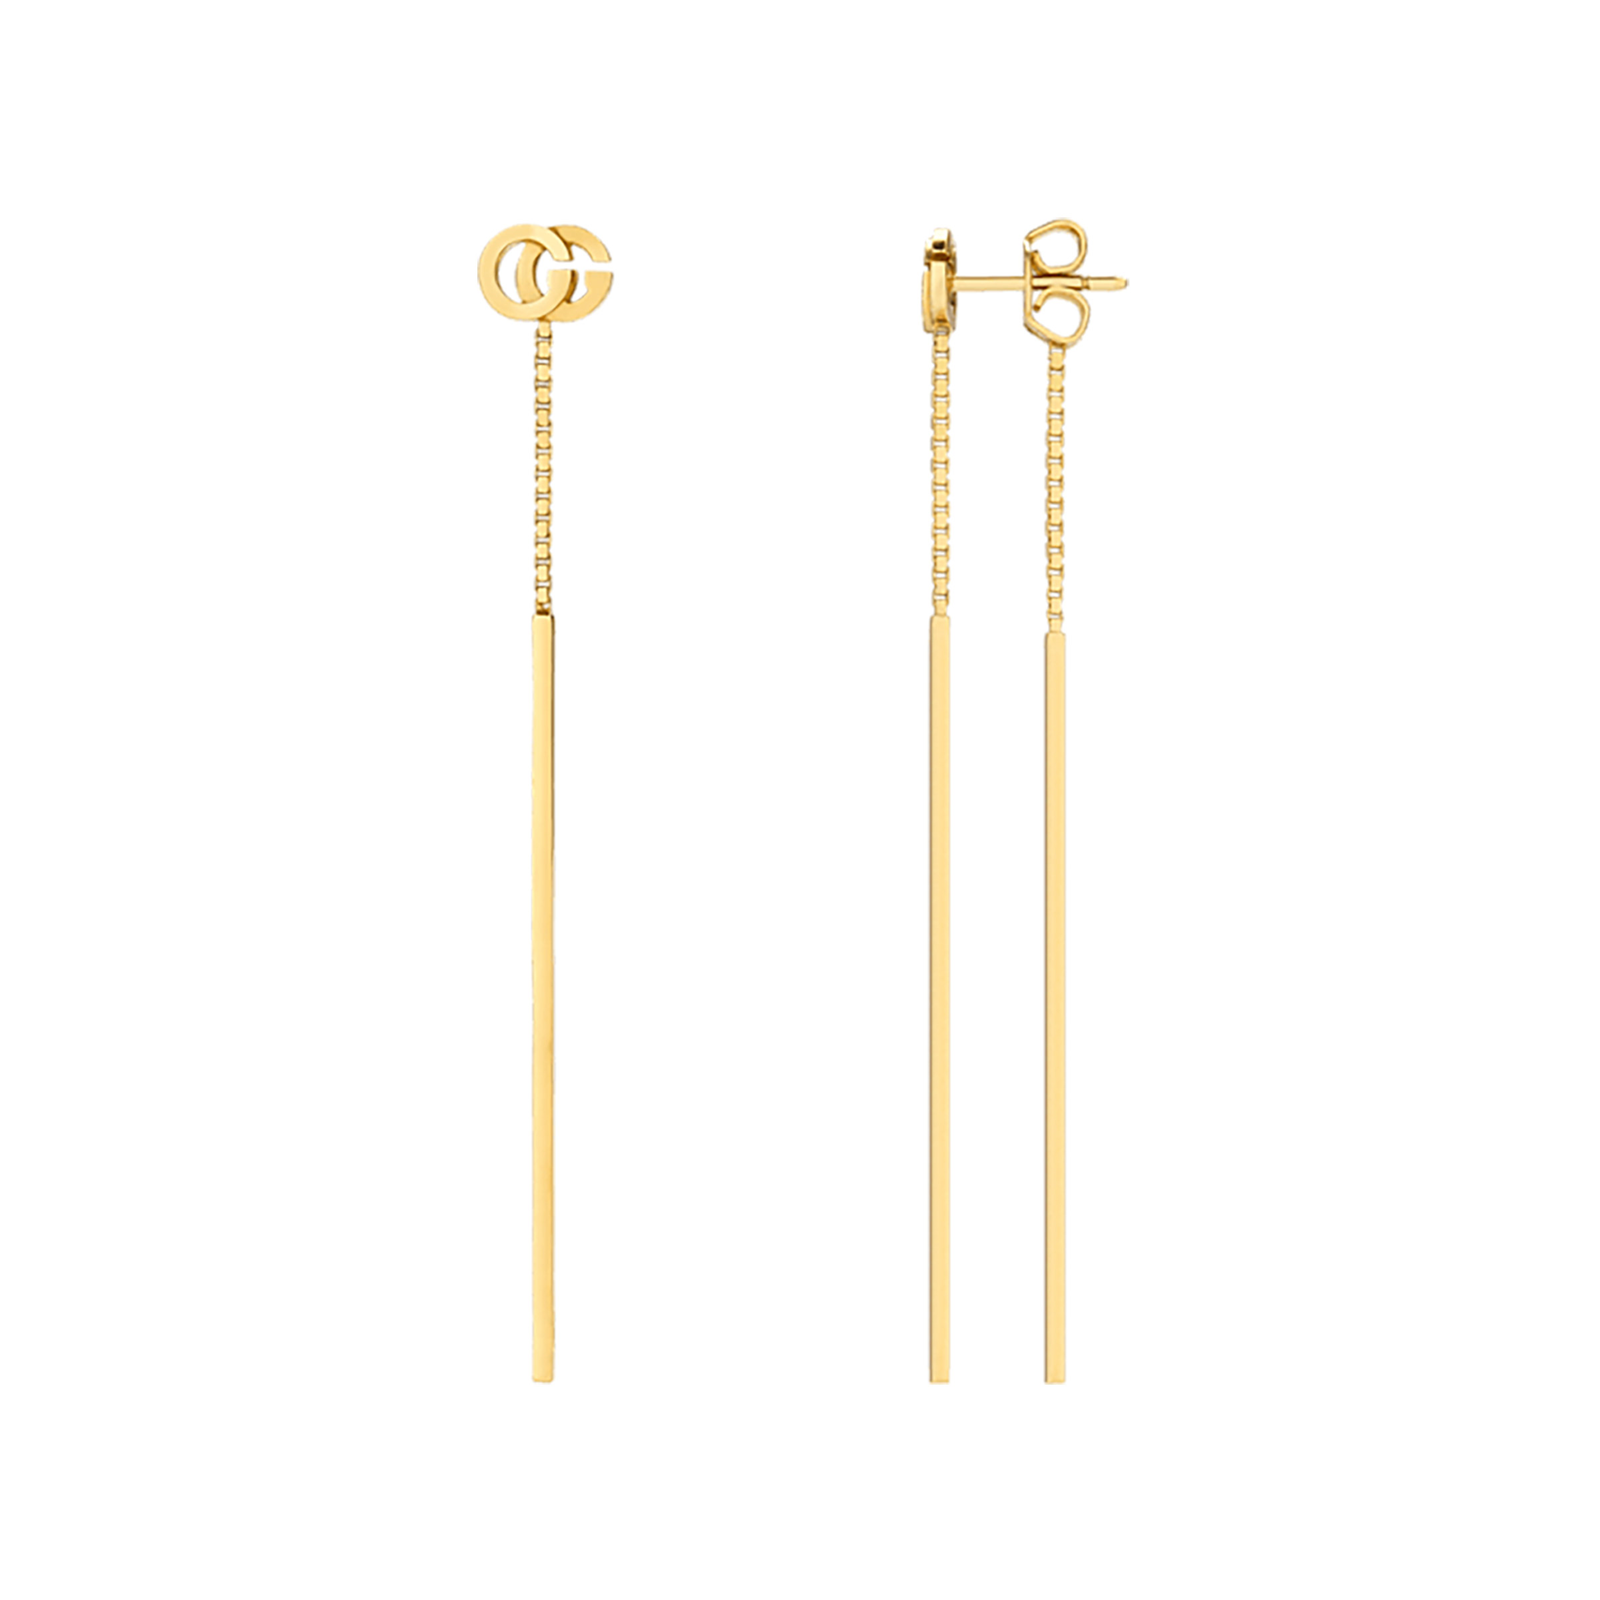 Gucci Running G Drop Earrings in 18ct Yellow Gold thumbnail